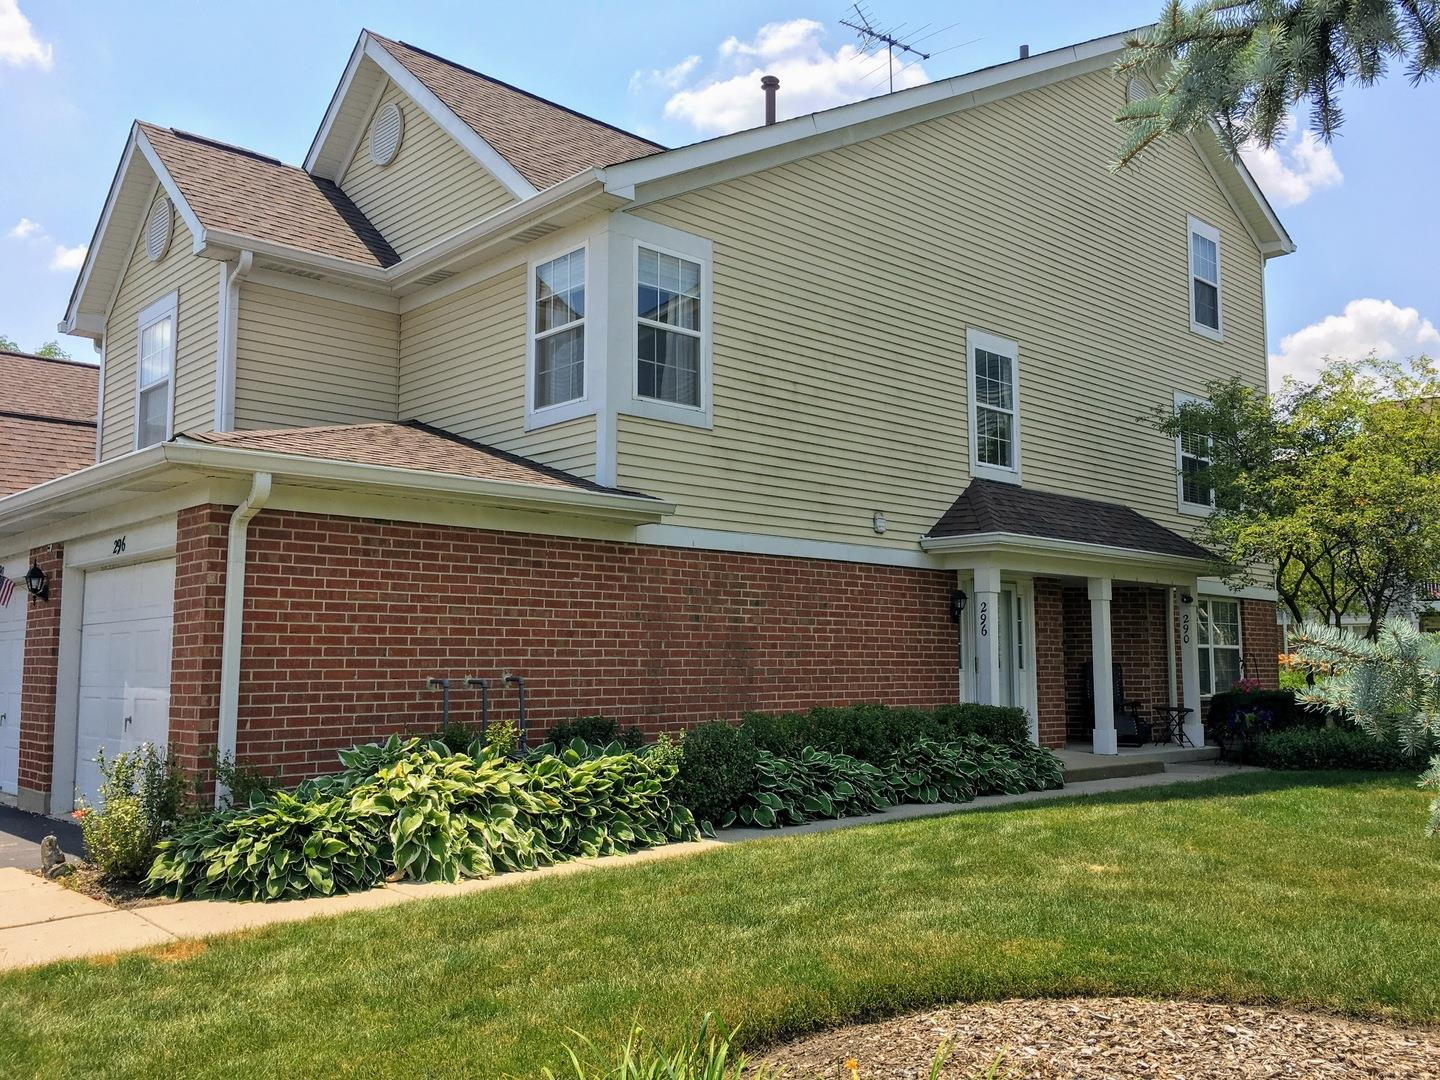 296 Ashbury Lane, Roselle, IL 60172 - #: 10774232